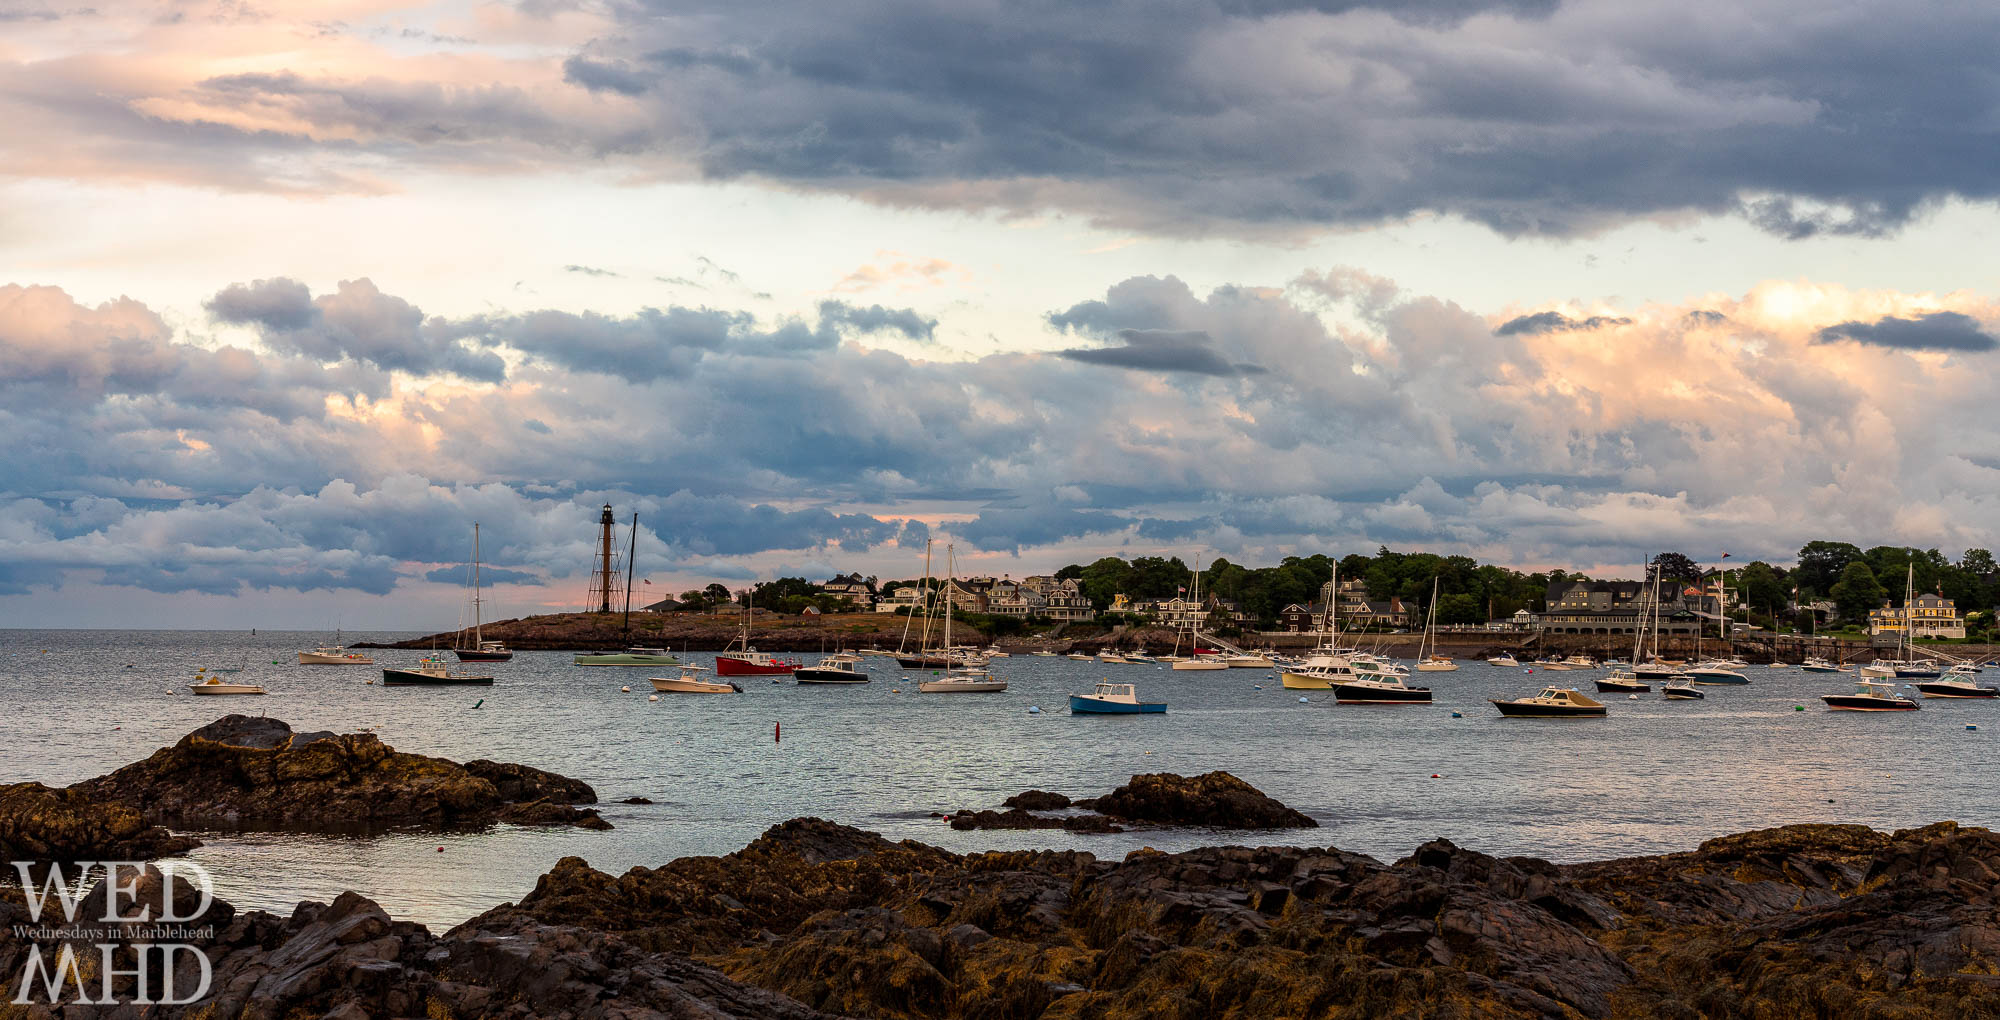 A view of Fort Beach and the Neck after a summer storm passes over Marblehead Harbor creating great cloud cover overhead